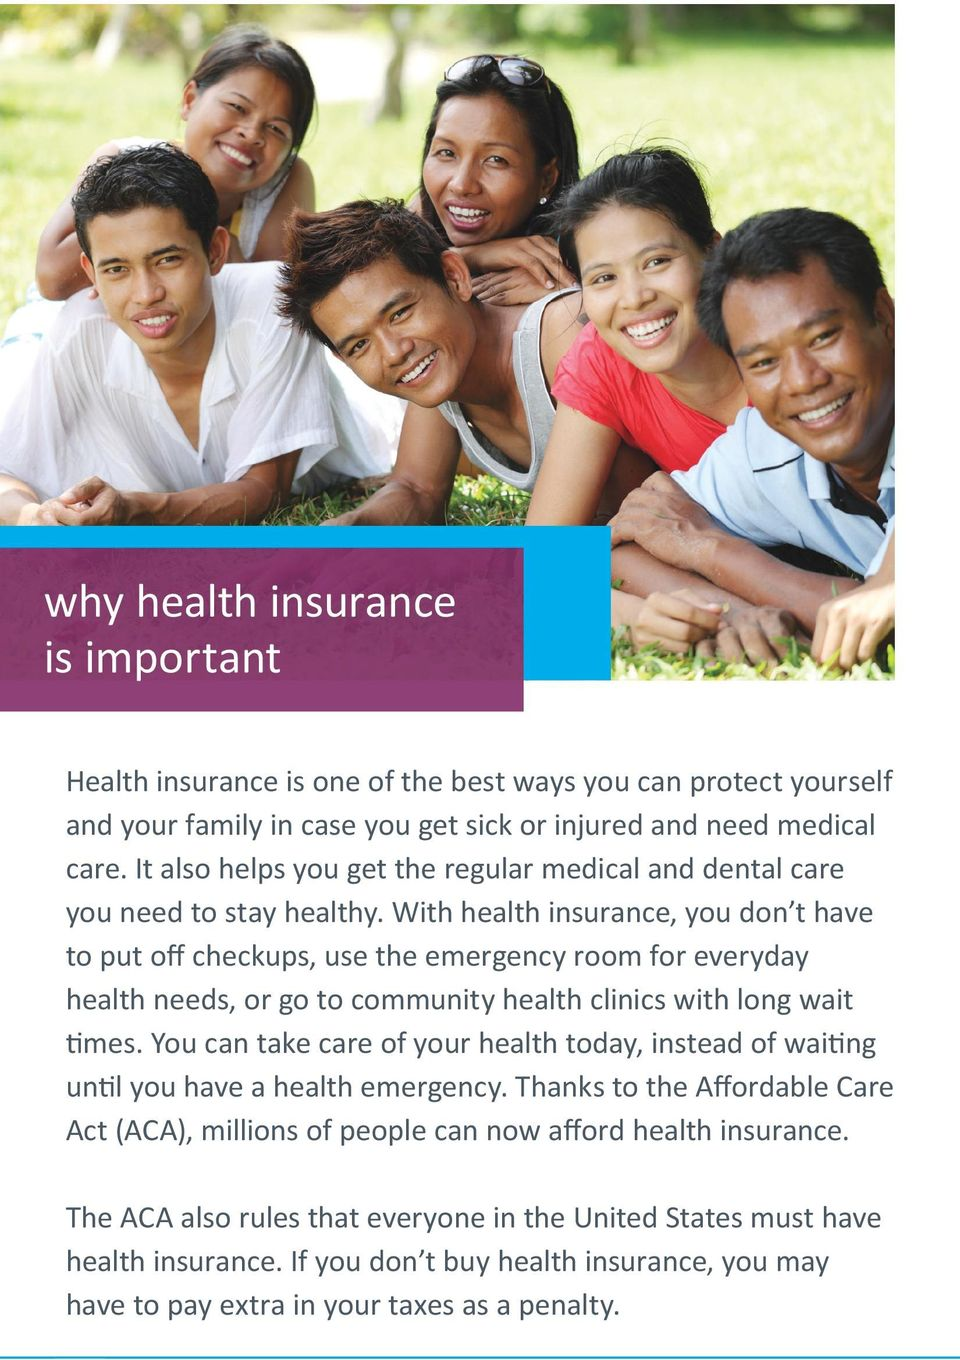 With health insurance, you don t have to put off checkups, use the emergency room for everyday health needs, or go to community health clinics with long wait times.